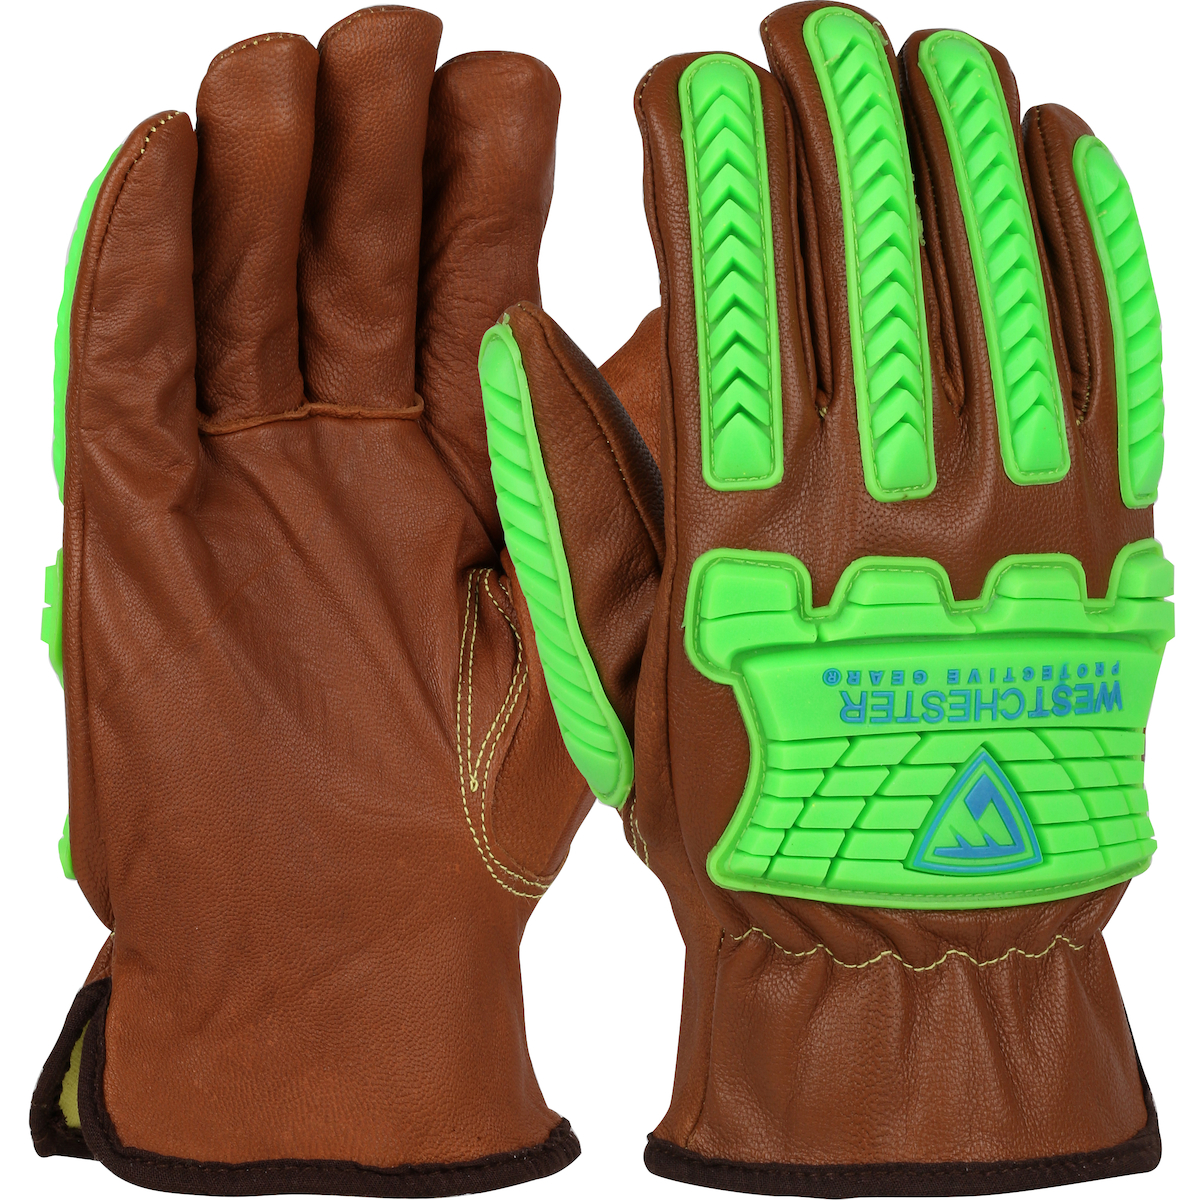 KS993KOAB PIP® West Chester® Top Grain Goatskin Impact Leather Drivers Glove with Para-Aramid Lining and Keystone Thumb feature Oil Armor™